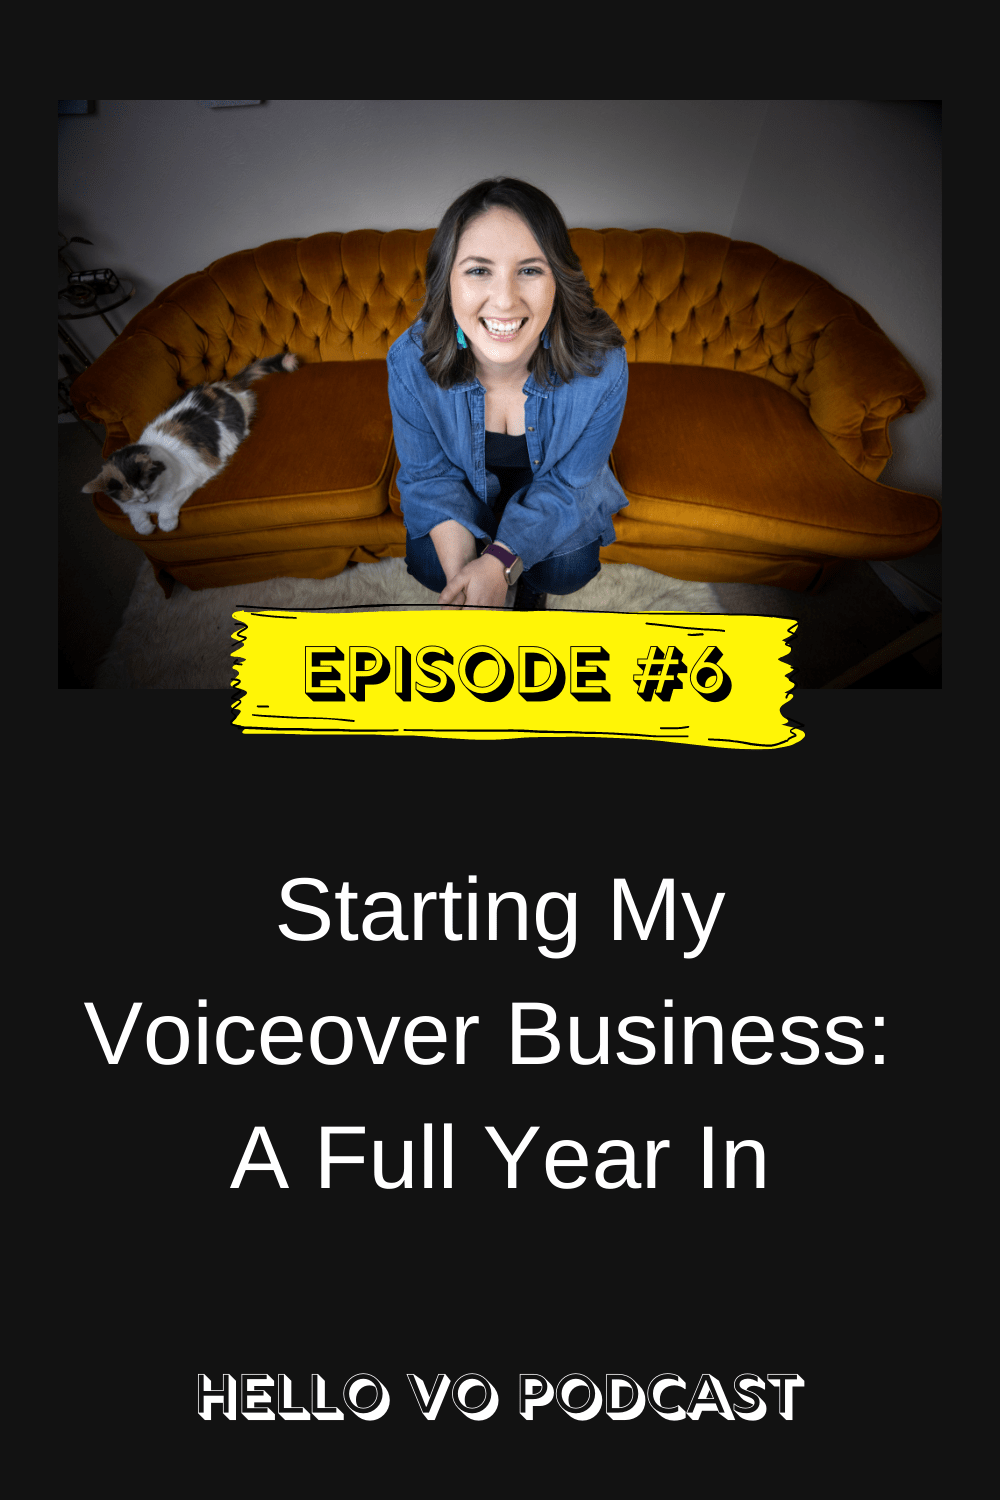 hello vo podcast one full year in